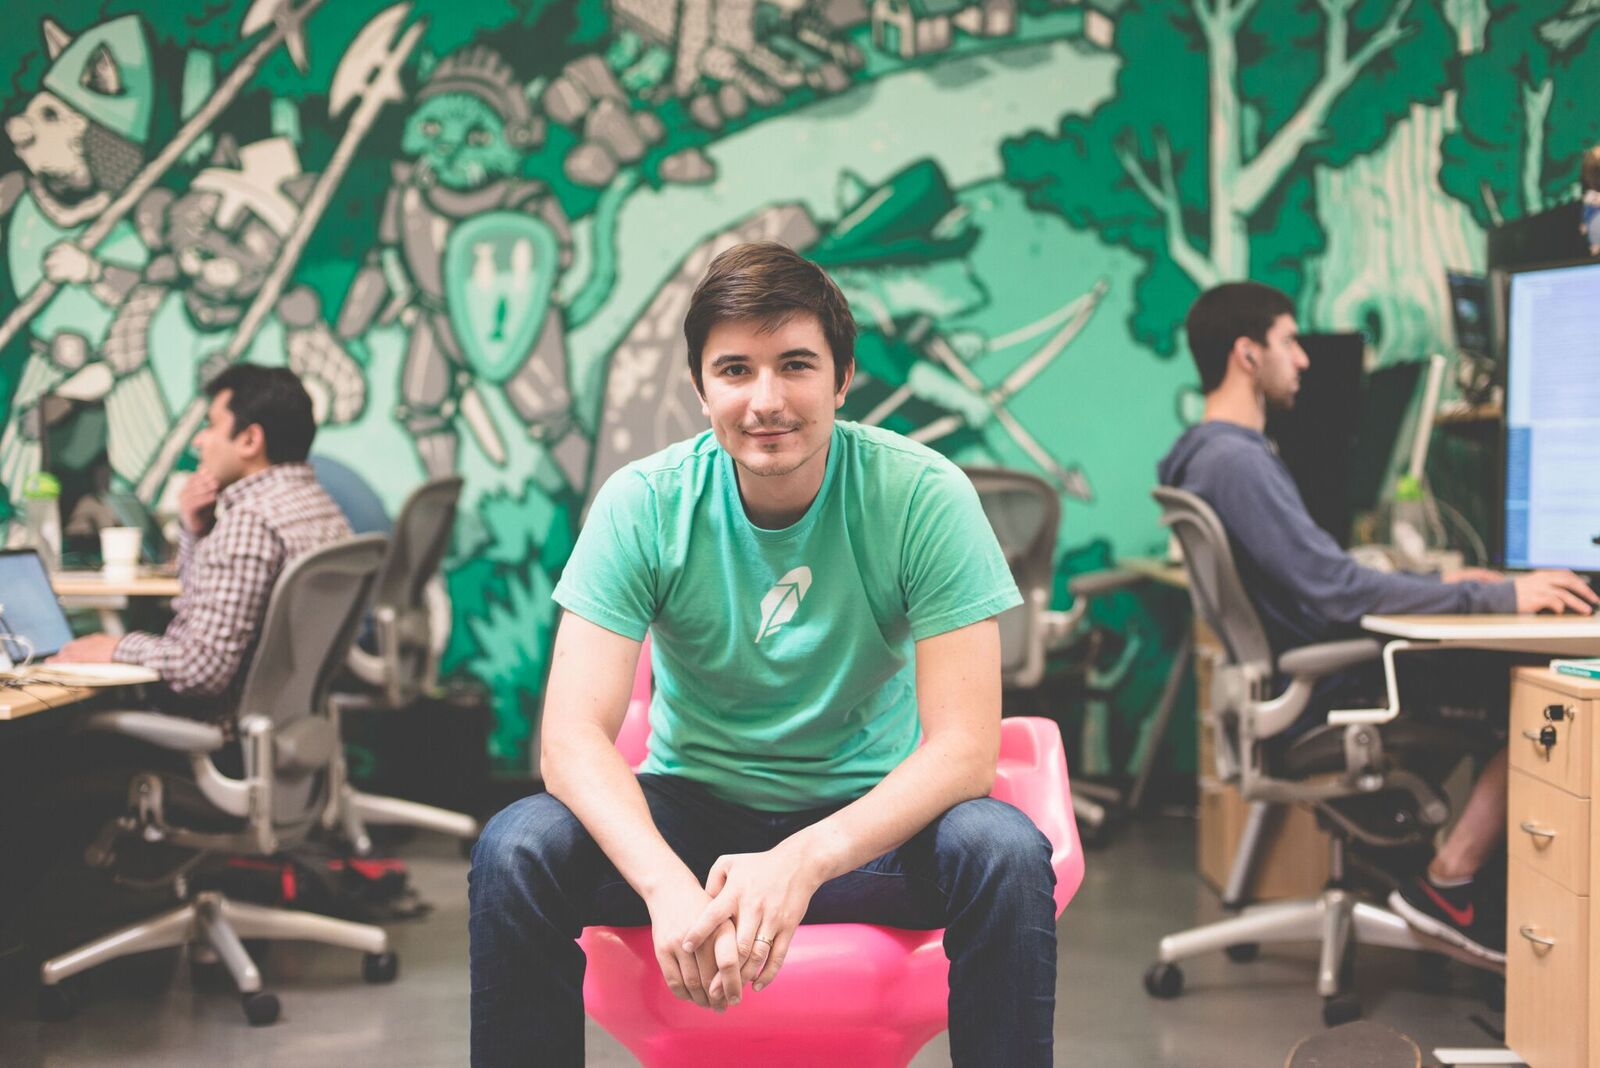 $363 Million: Robinhood Raises Big to Build 'Largest Crypto Platform'